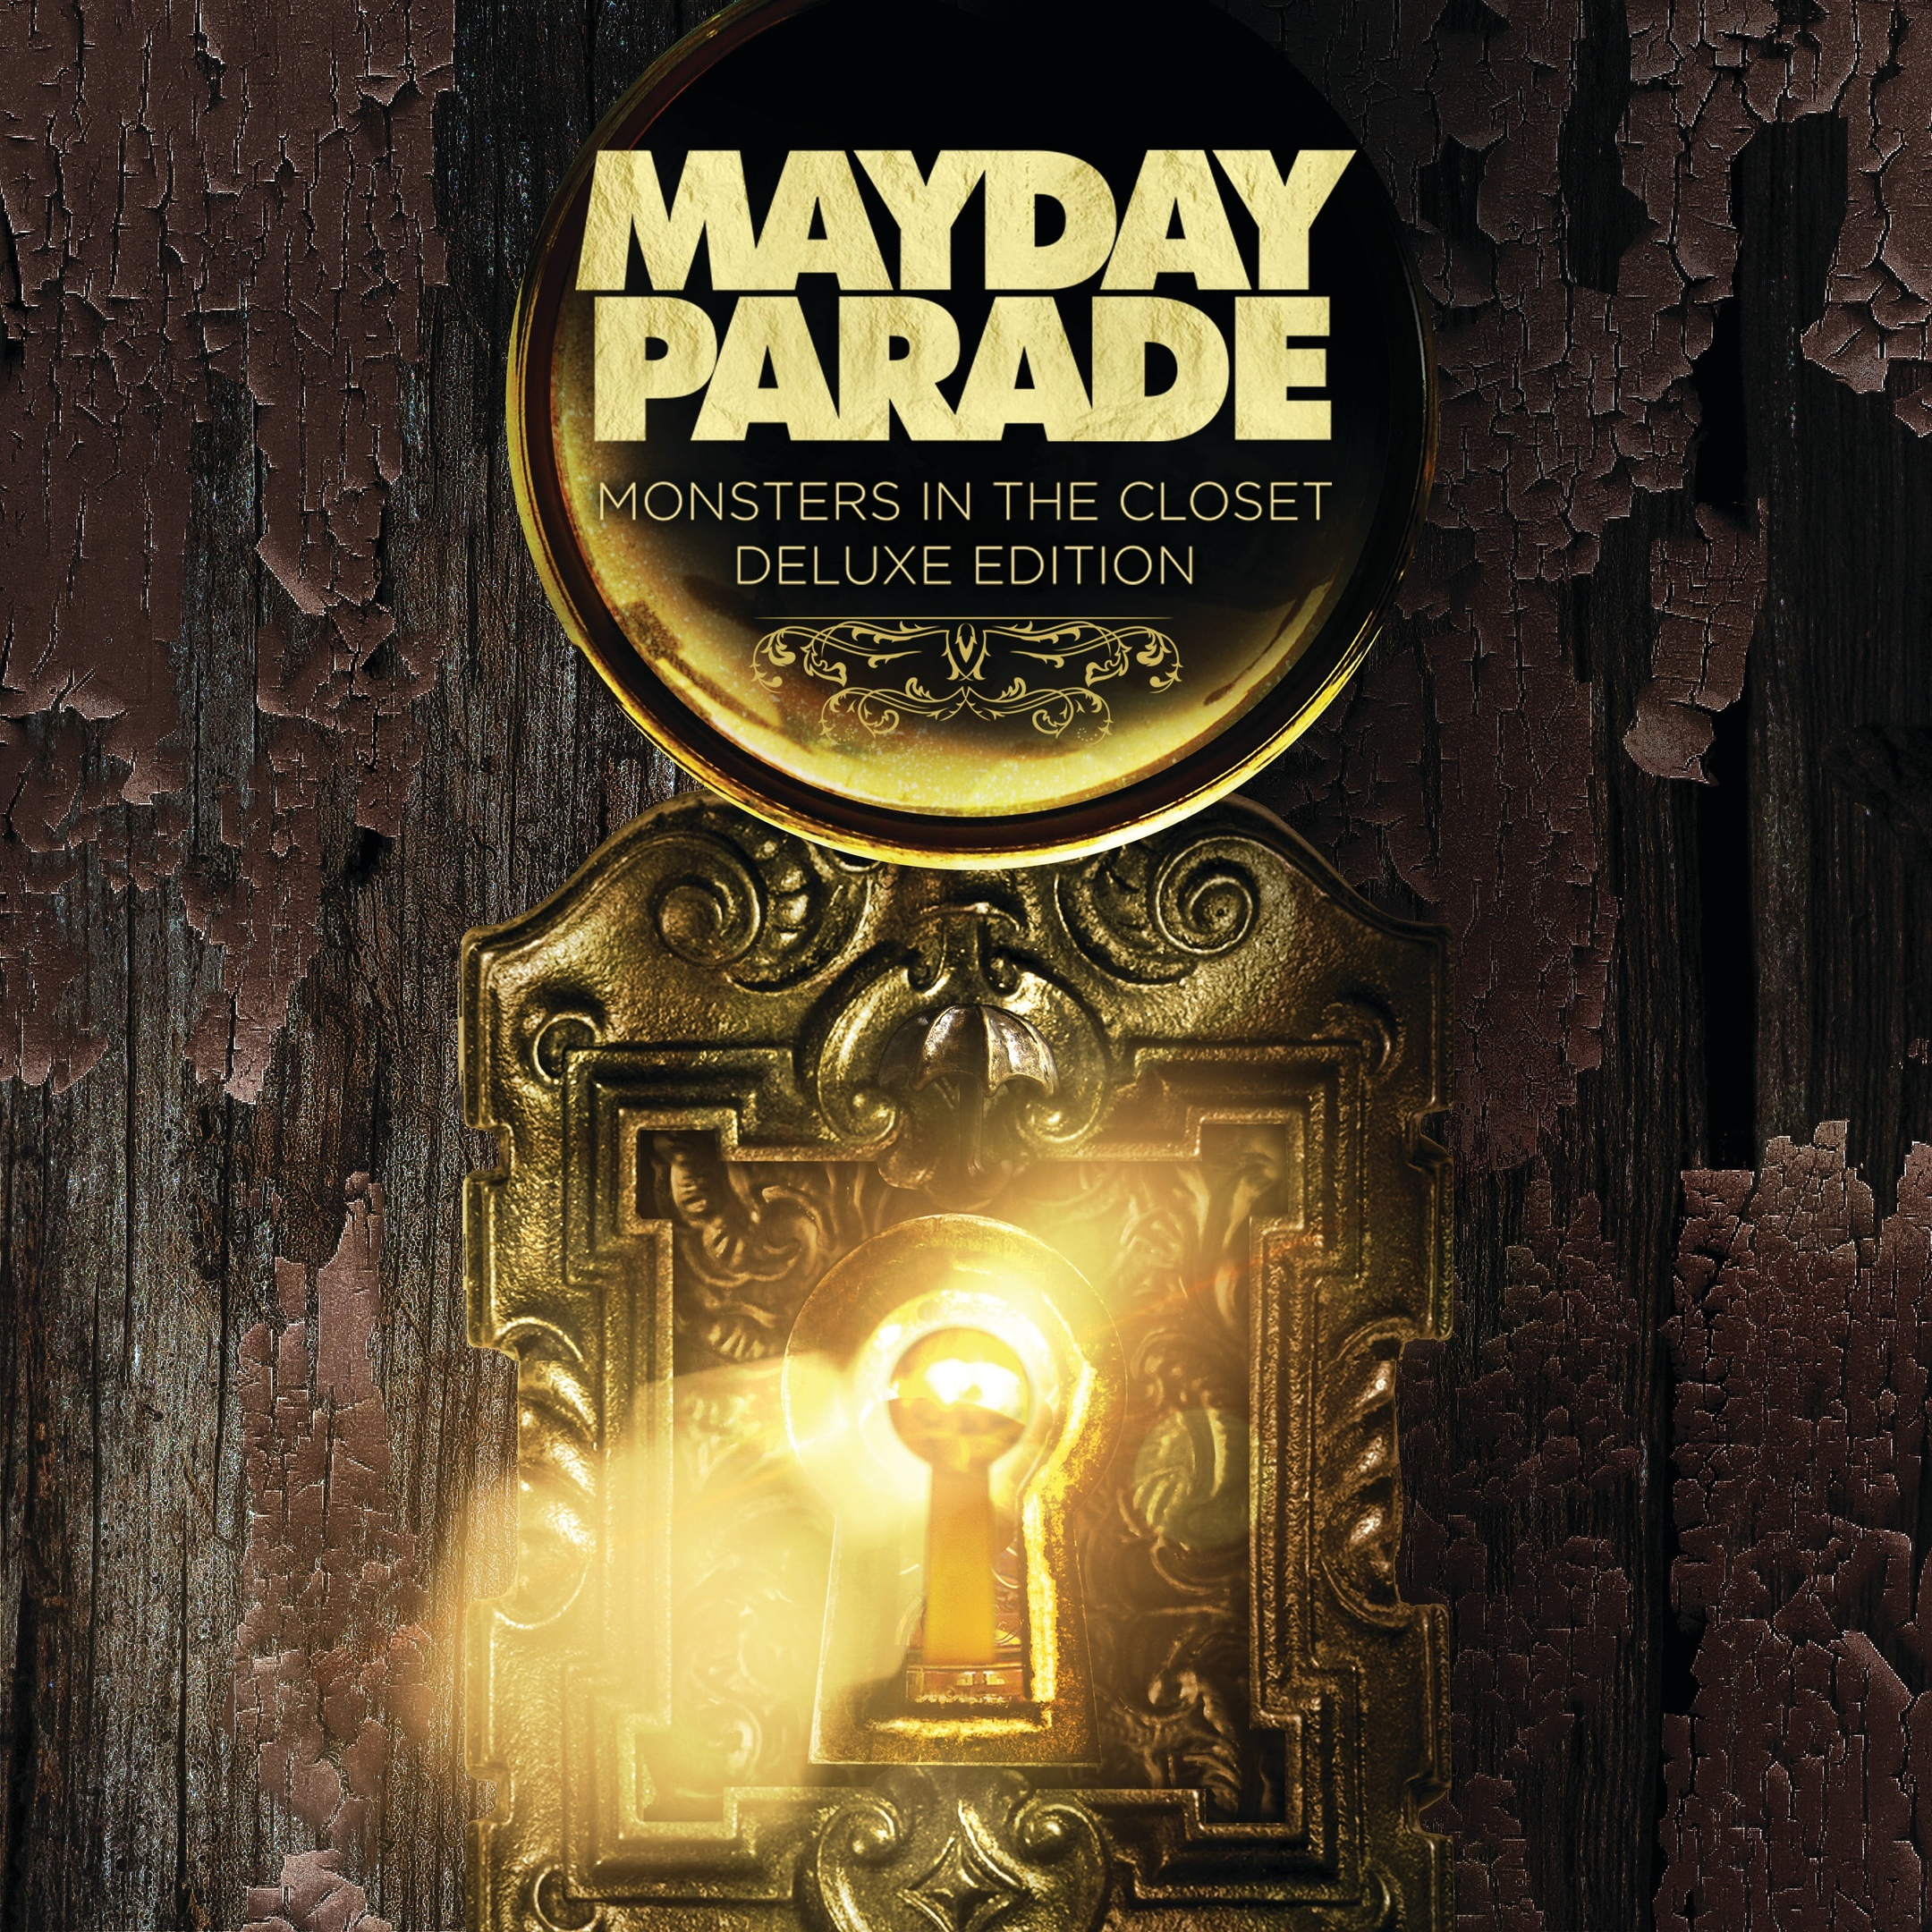 Mayday Parade album Monsters in the Closet (Deluxe Edition)